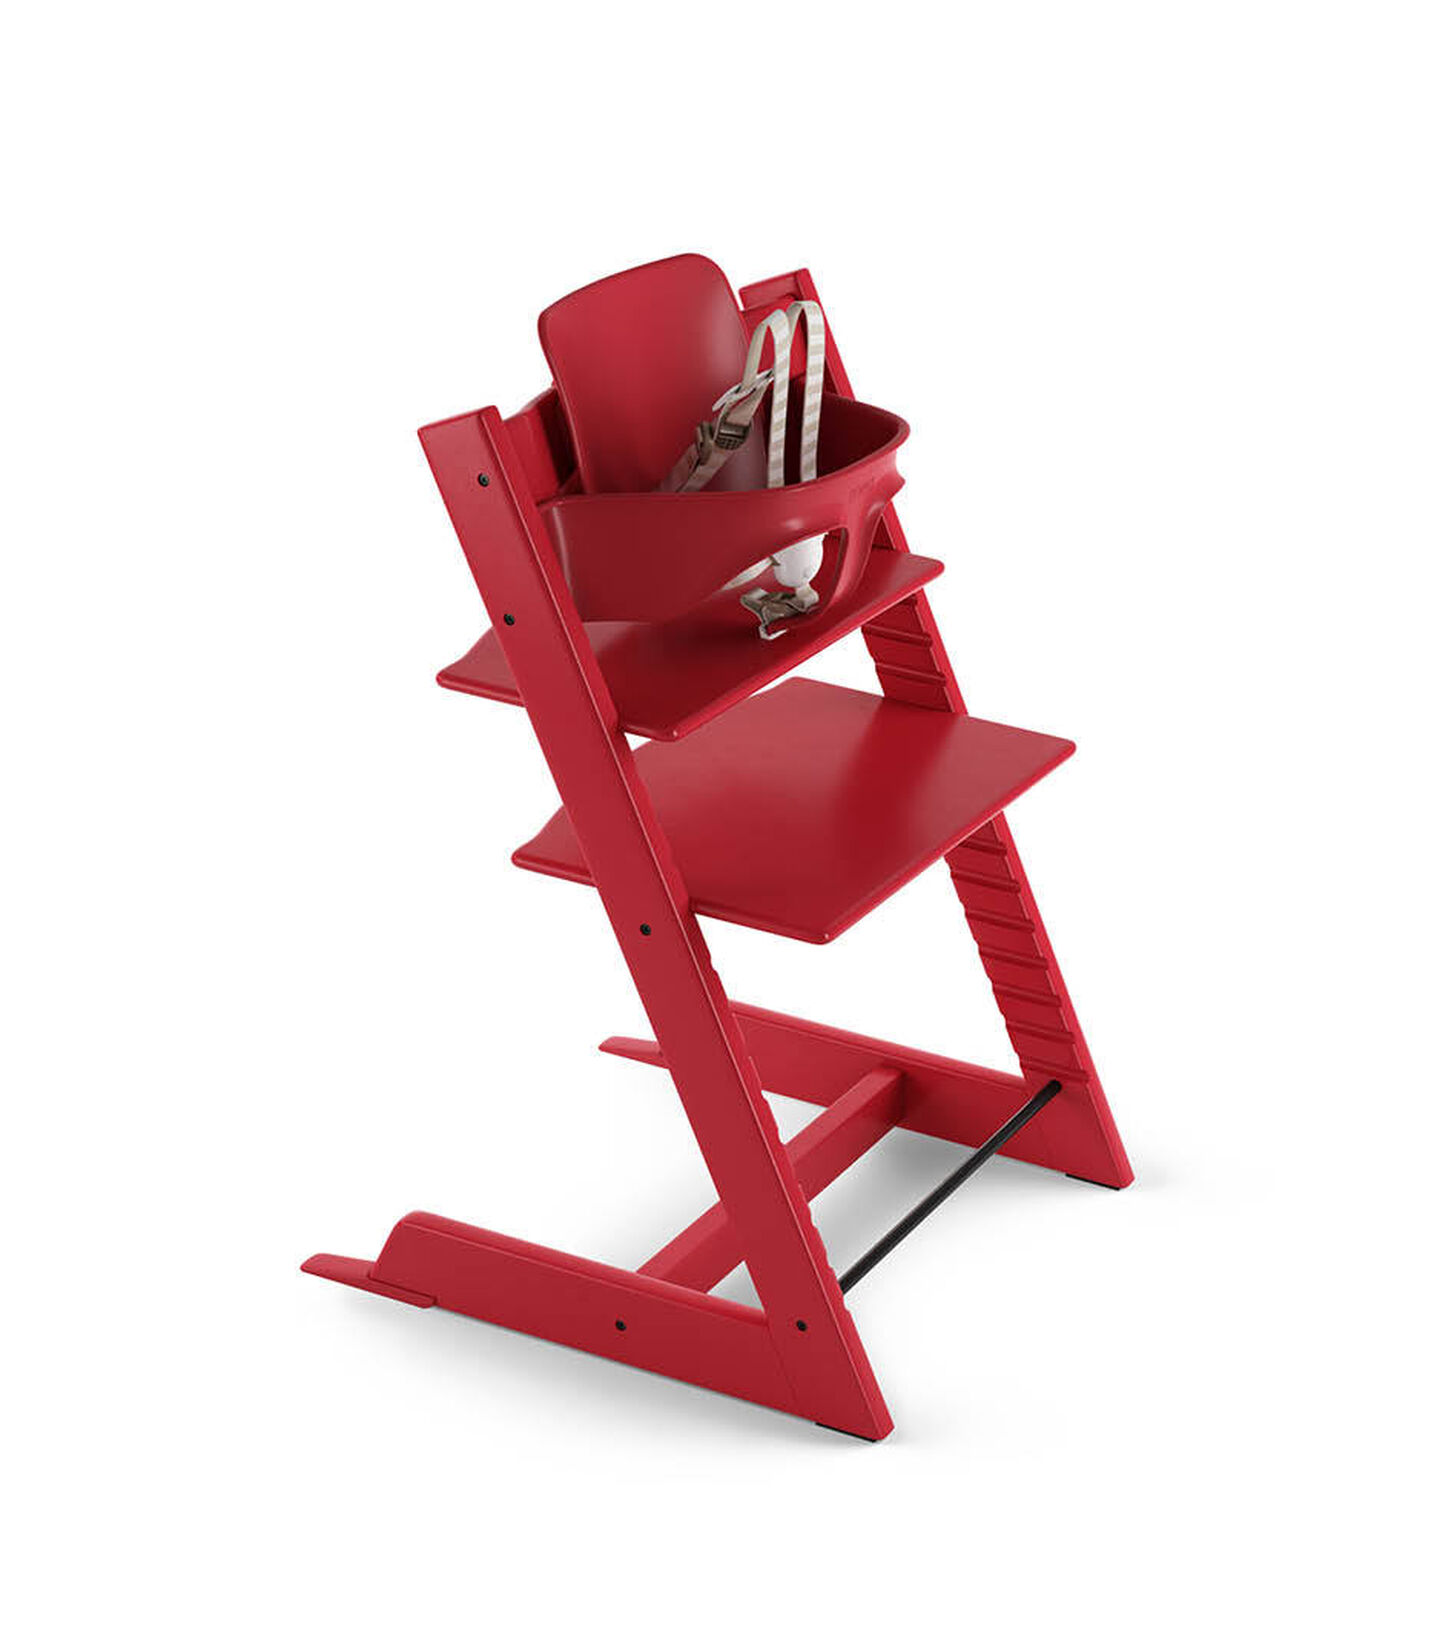 Tripp Trapp® Plum Purple with Tripp Trapp® Baby Set, Red. US version. 3D rendering.